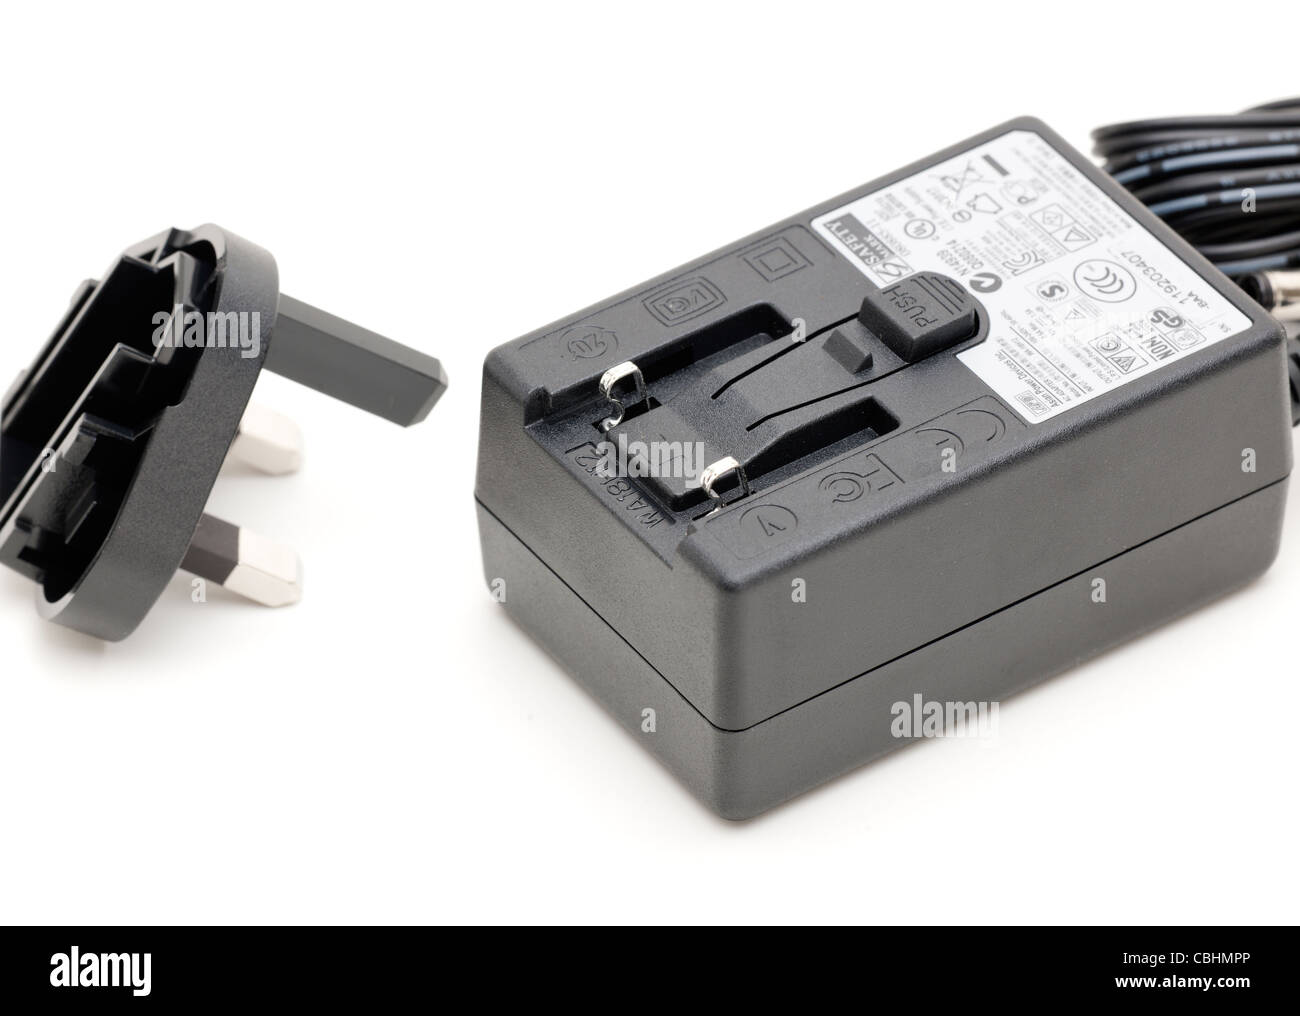 Power supply with removable UK three pin adapter - Stock Image